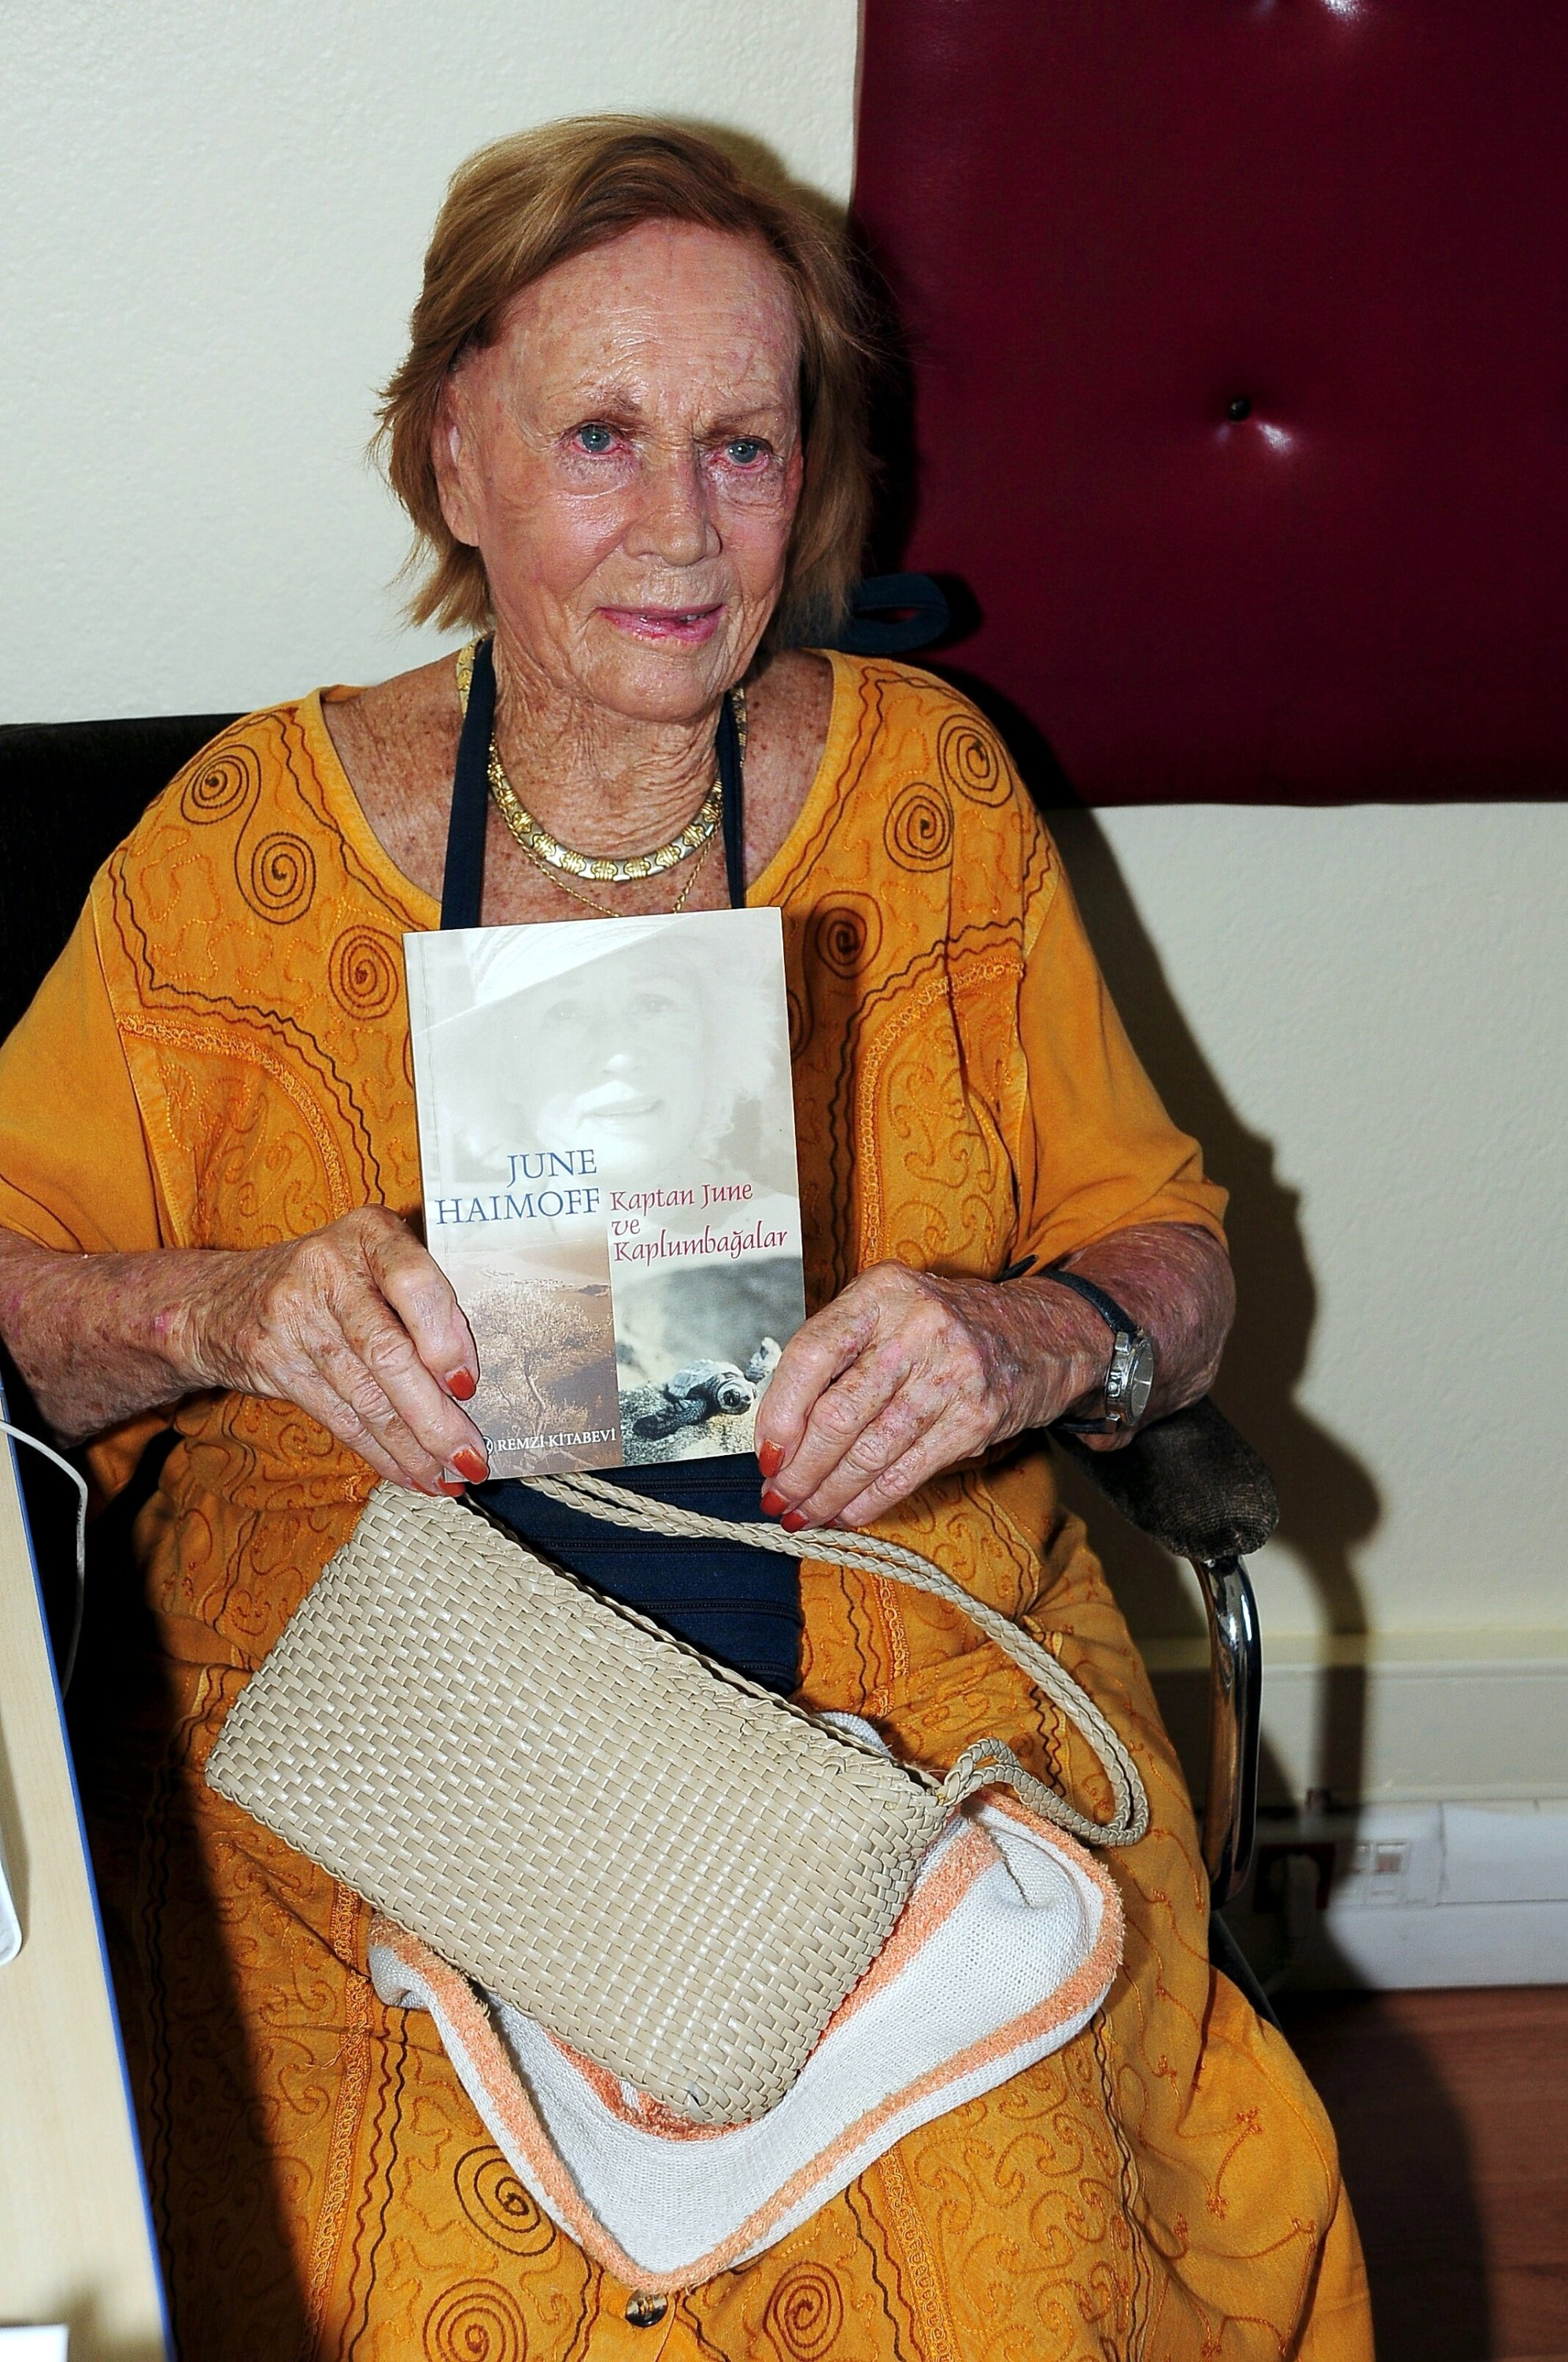 Nicknamed captain, June Haimoff became a Turkish citizen at age 86. (File Photo)